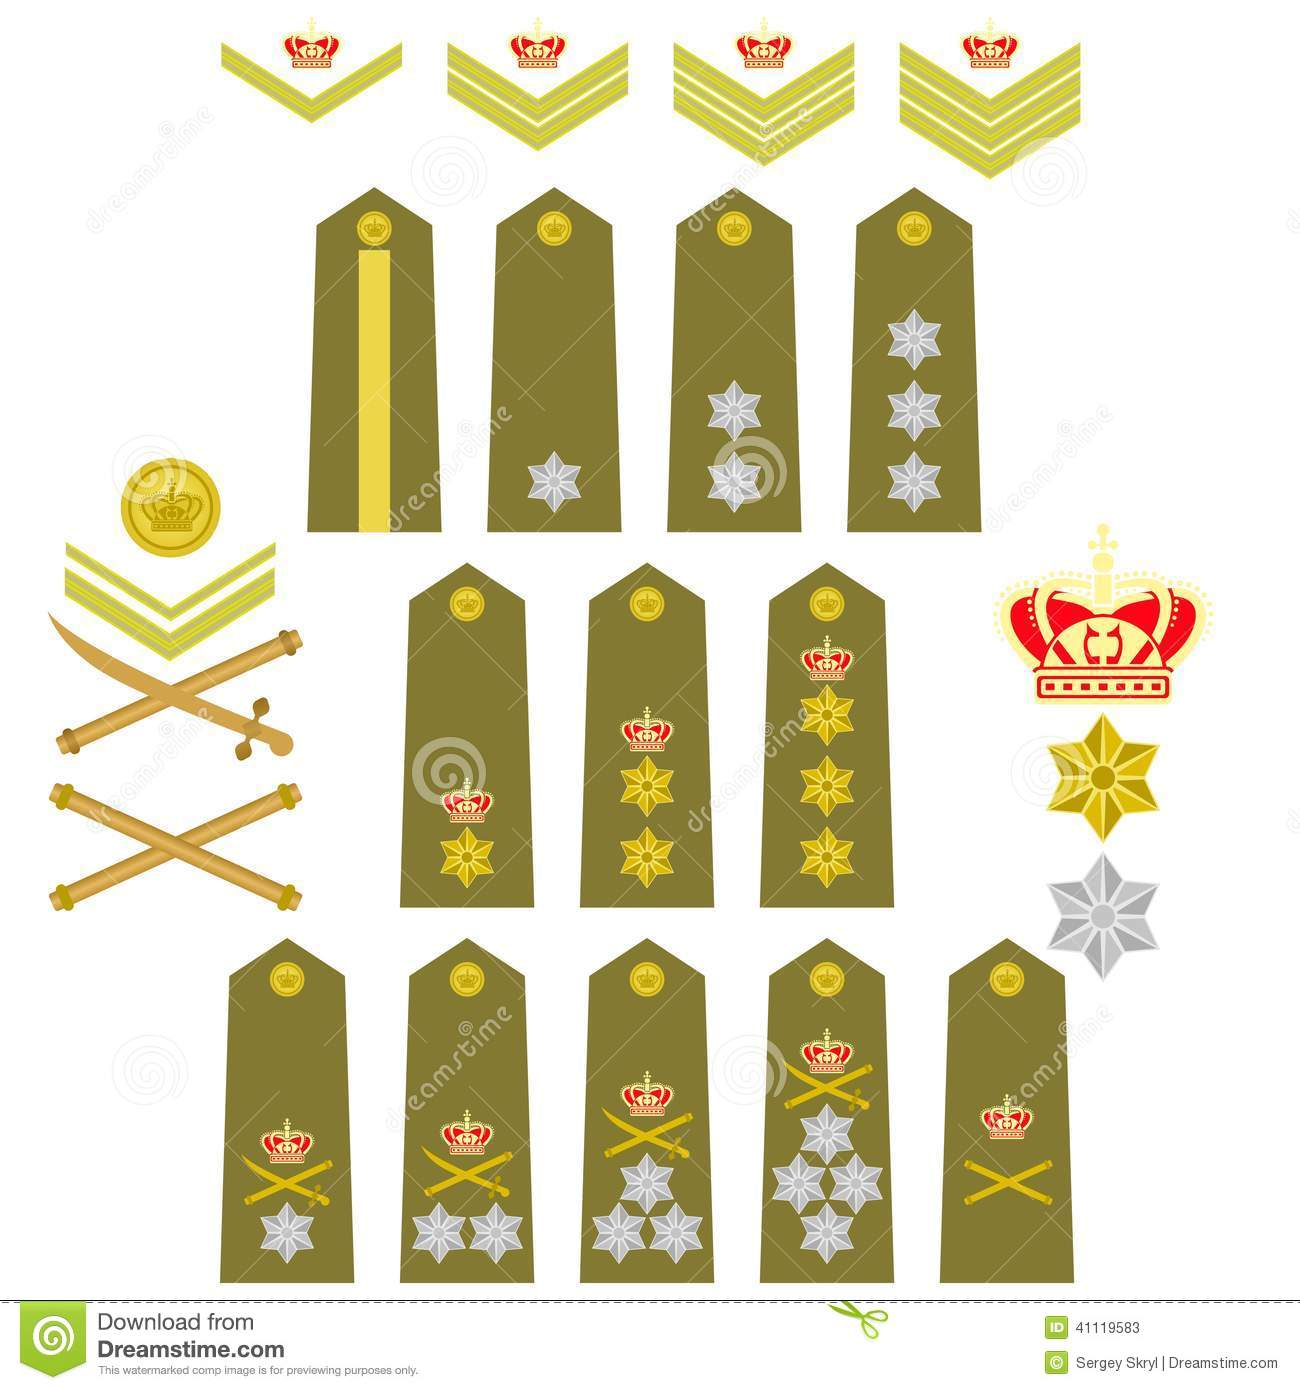 Insignia Of The Royal Greek Army Stock Vector - Illustration of